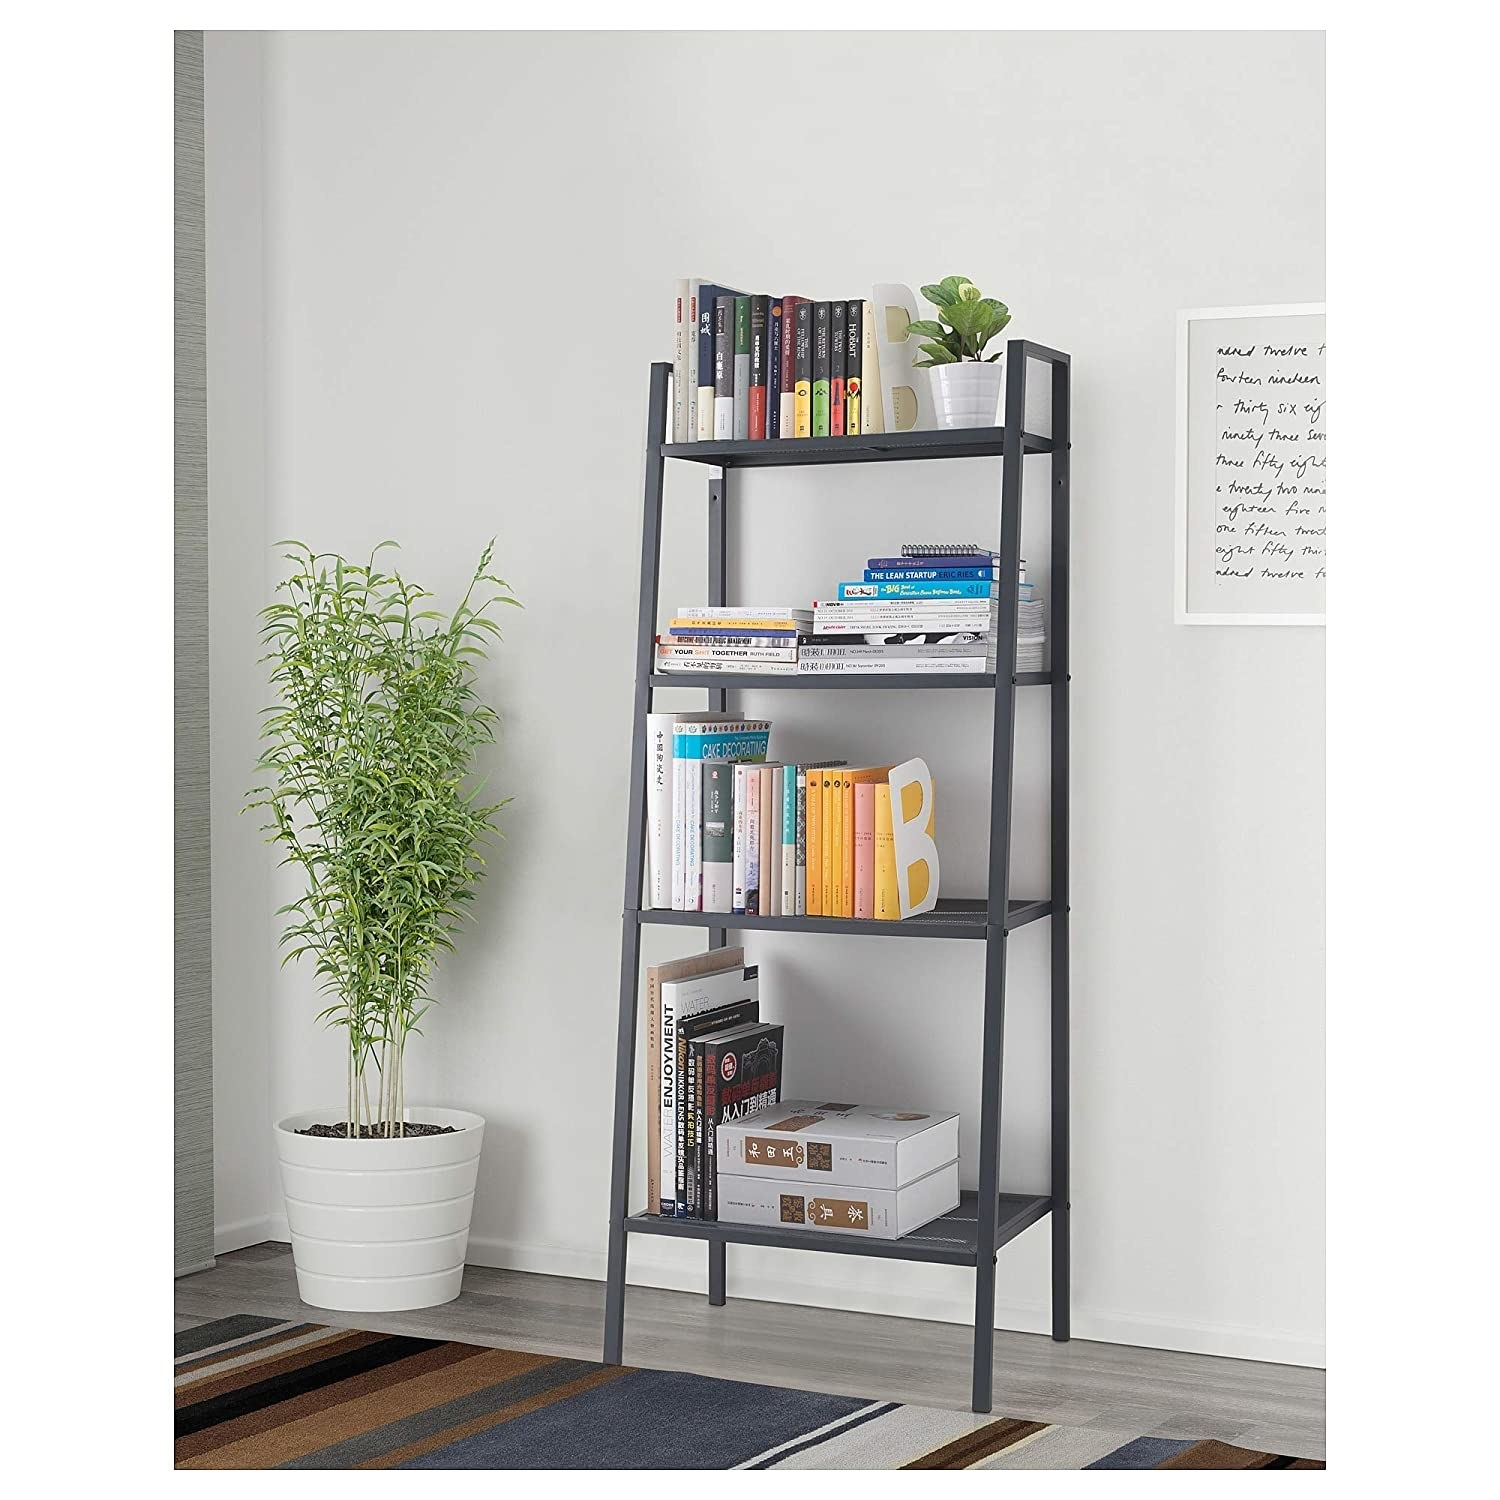 A black shelf unit